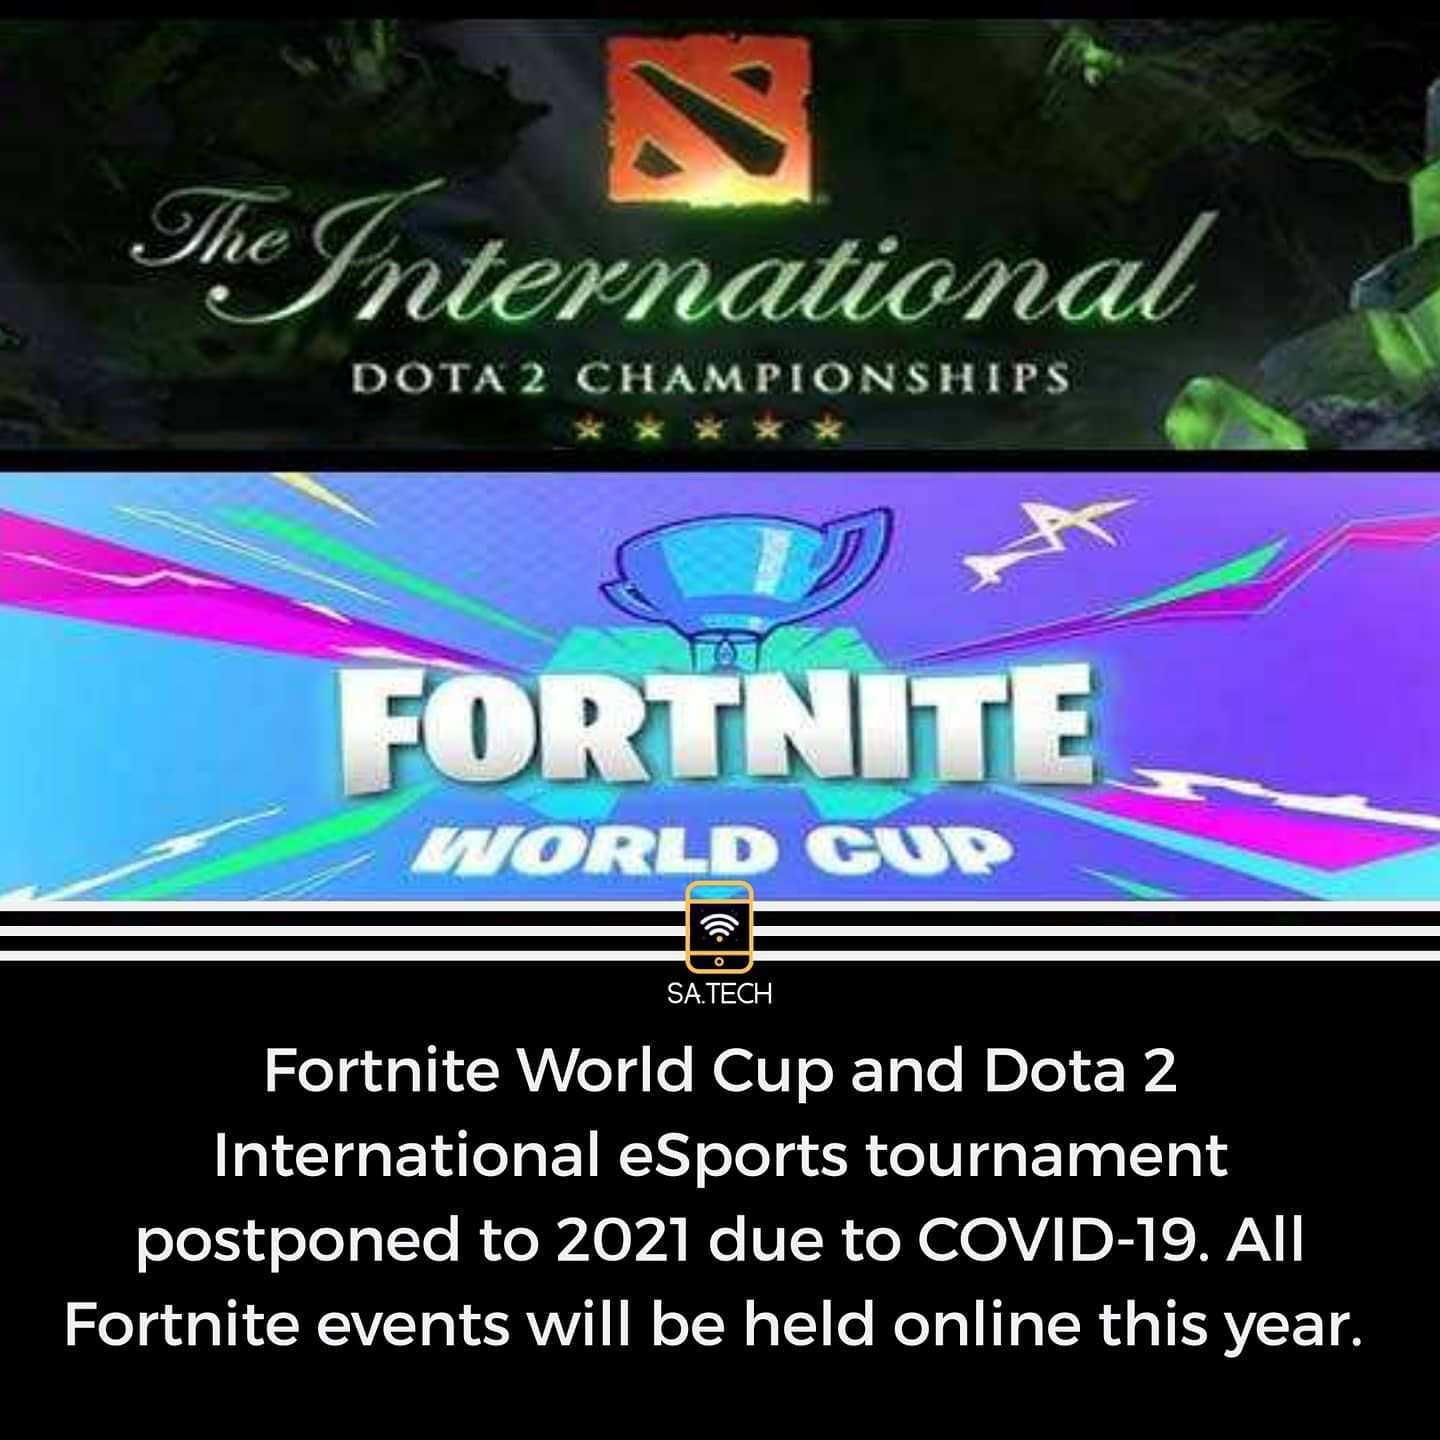 Do You Remember The Previous Fortnite World Cup Winner Getting 3 Million In Prize Money Everything Gone To Toss In 2020 World Cup Winners Do You Remember World Cup